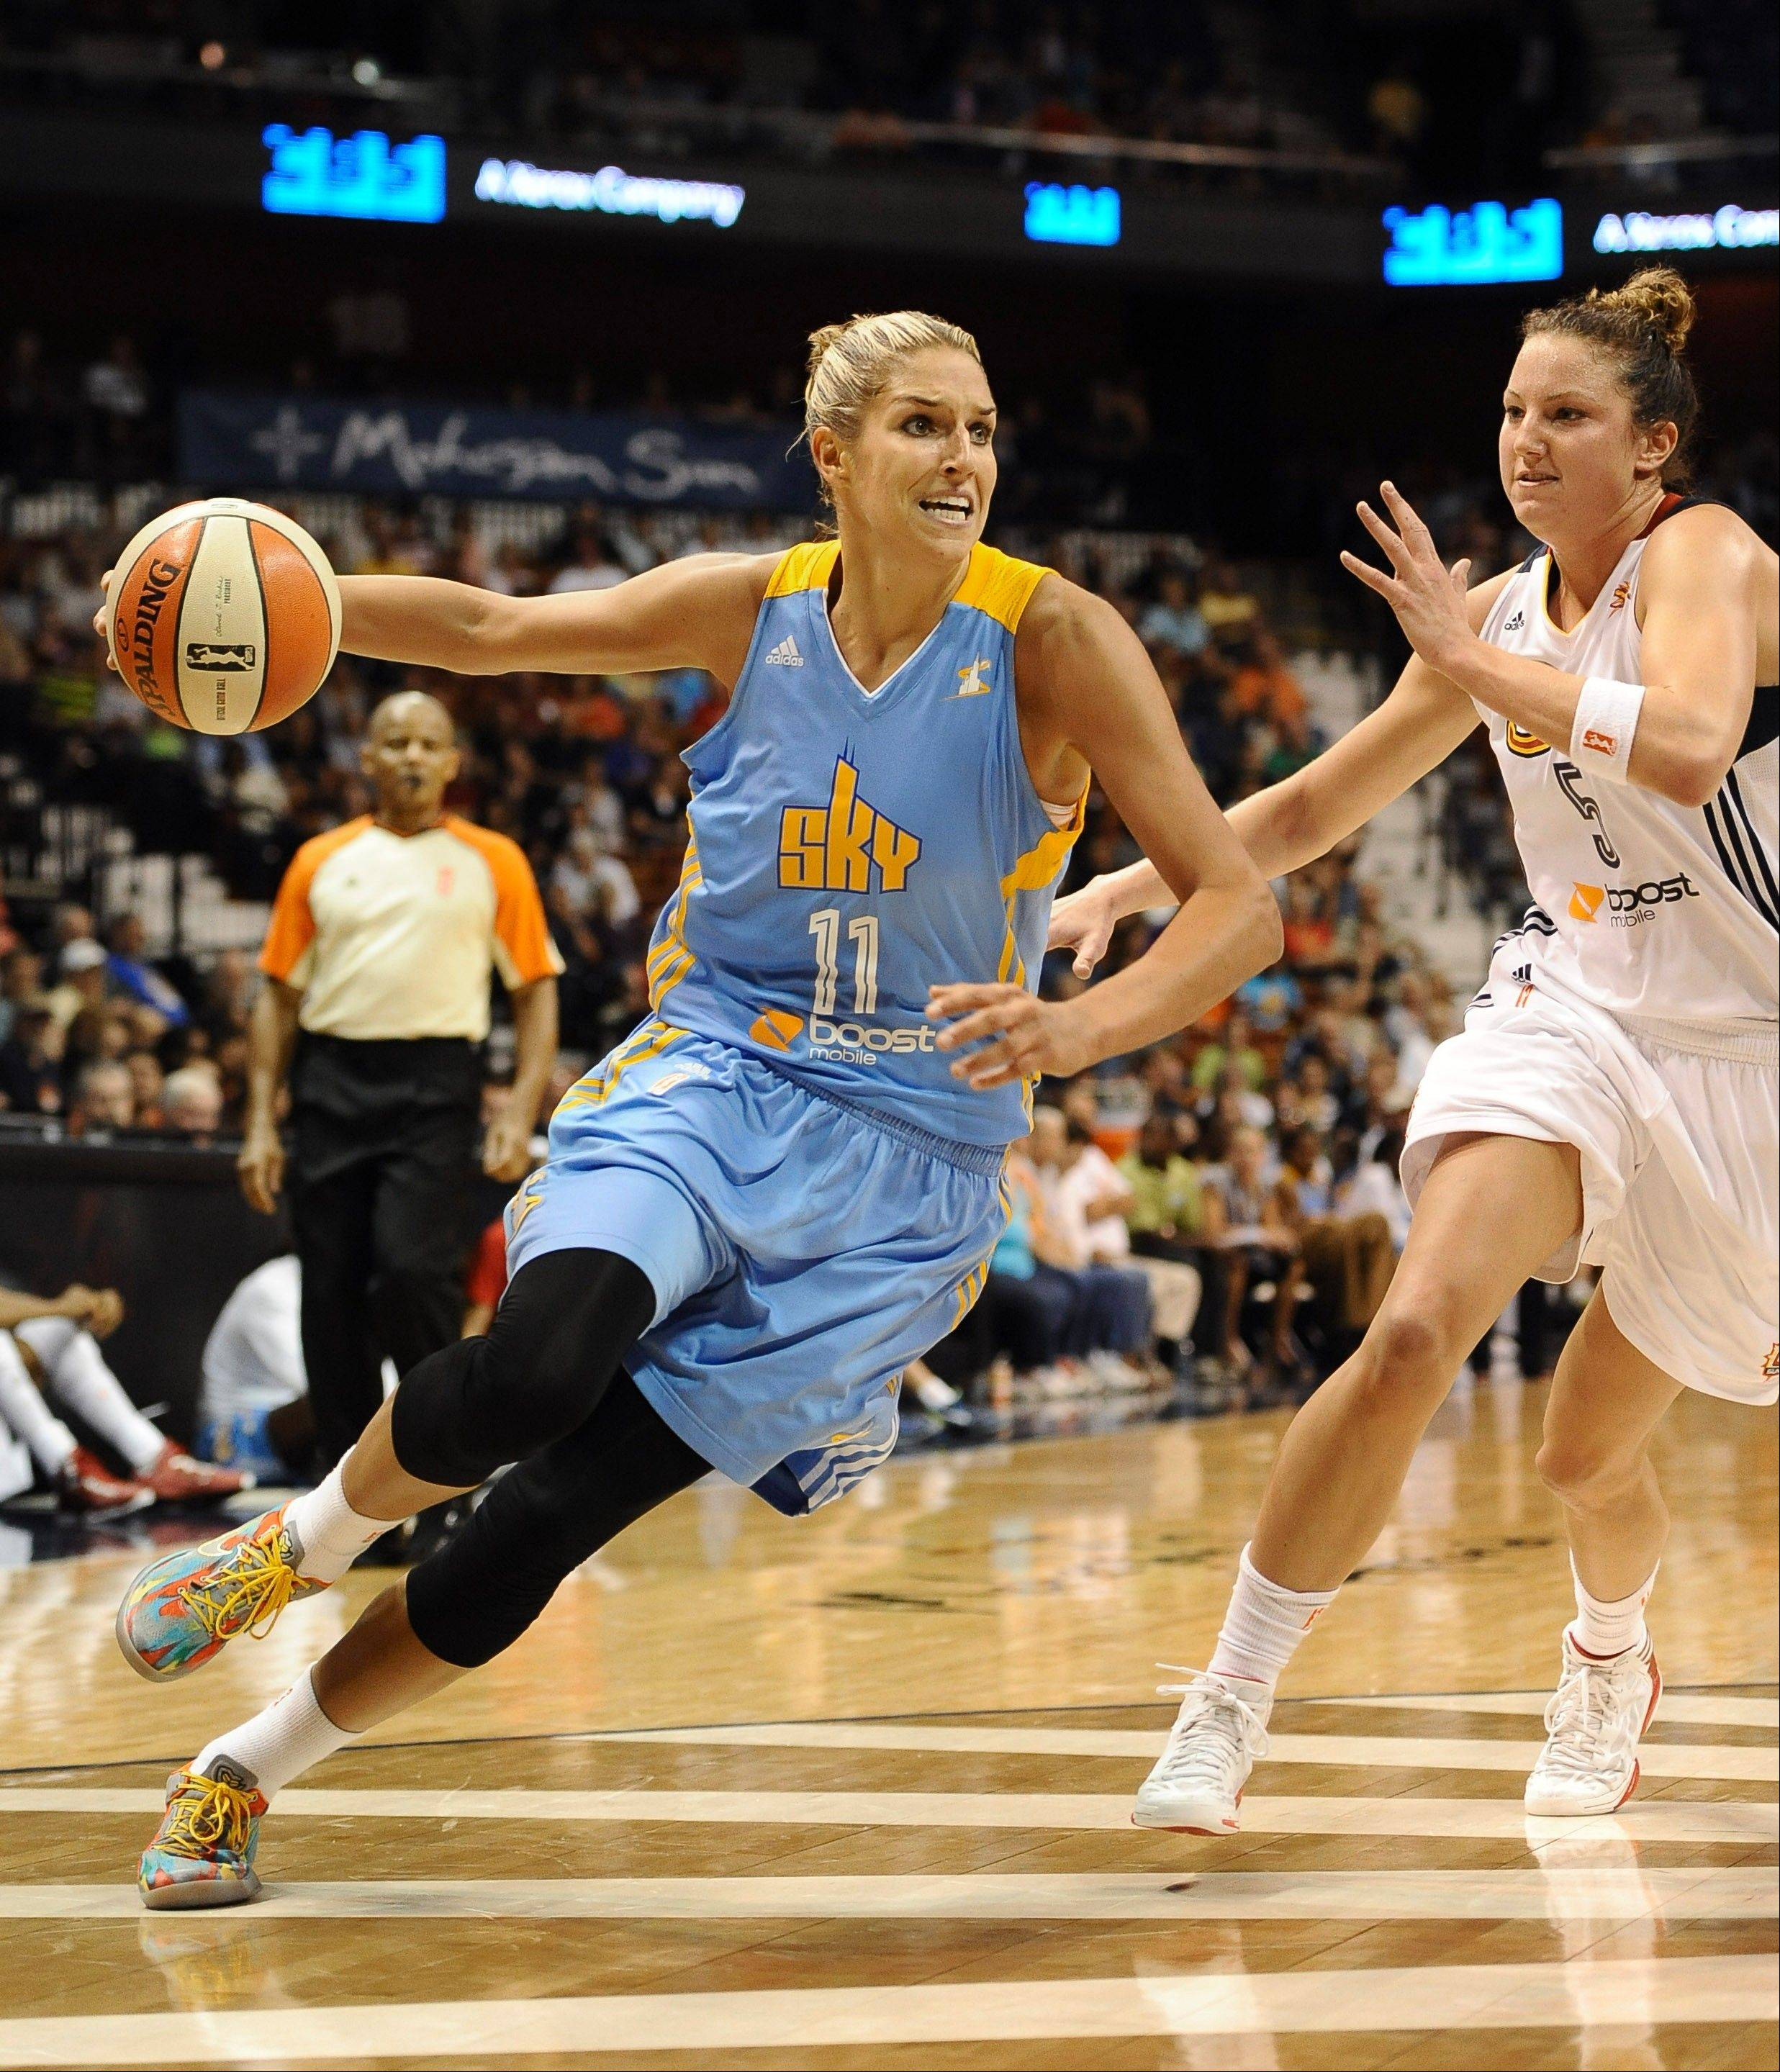 The emergence of Elena Delle Donne (11) changed the fortunes of the Chicago Sky, which made the WNBA playoffs for the first time and posted the franchise's first winning season.